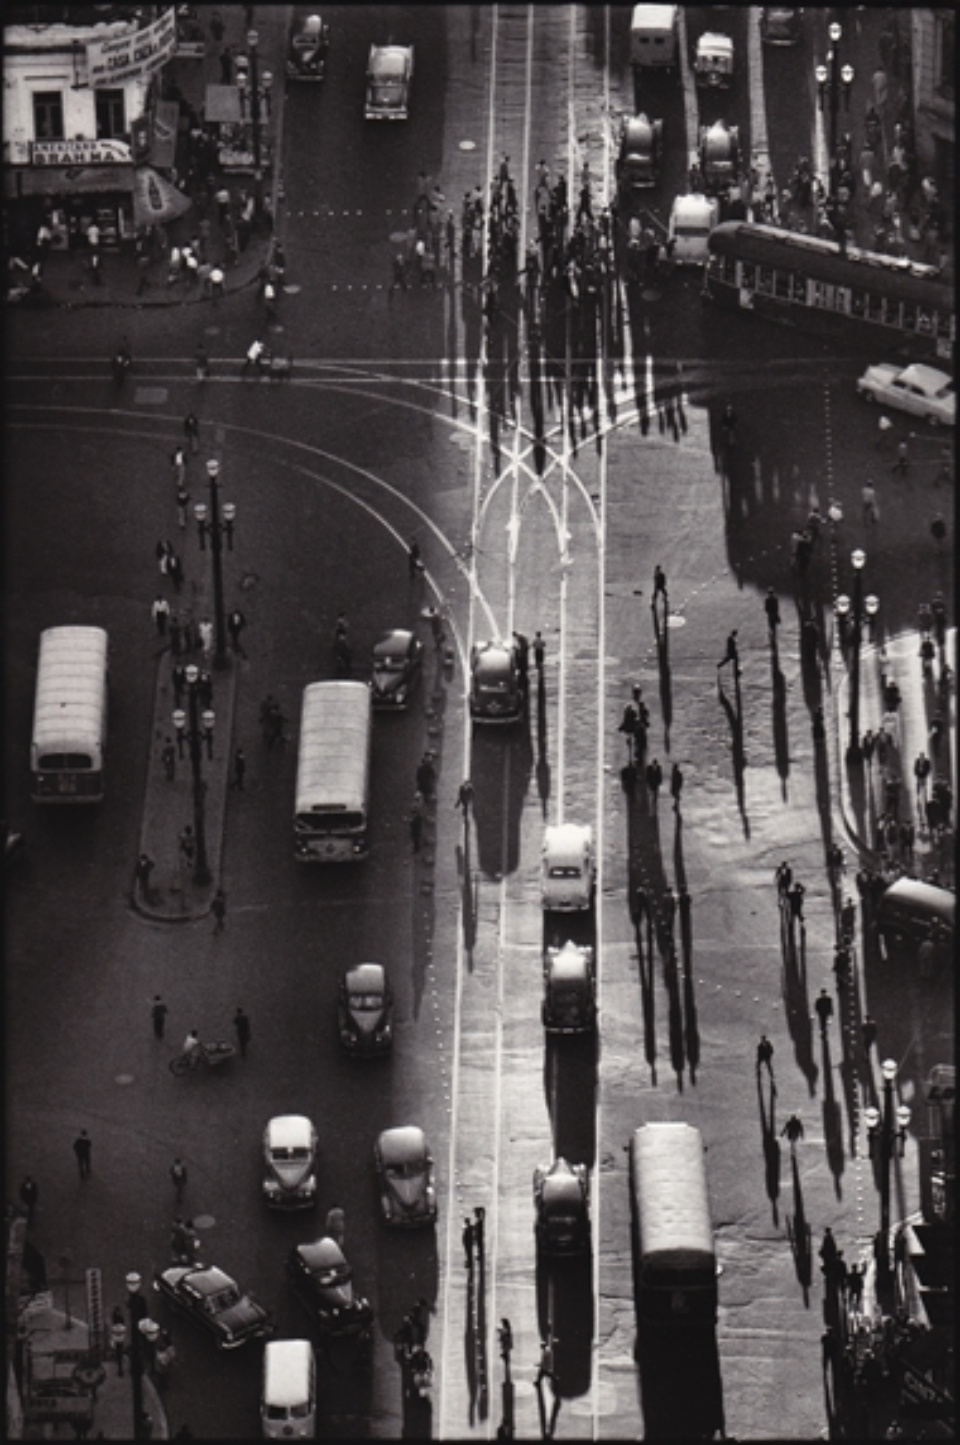 René Burri Plaza José Marti Havana, Kuba, 1993 Signed, titled and dated on verso Gelatin silver print, printed later